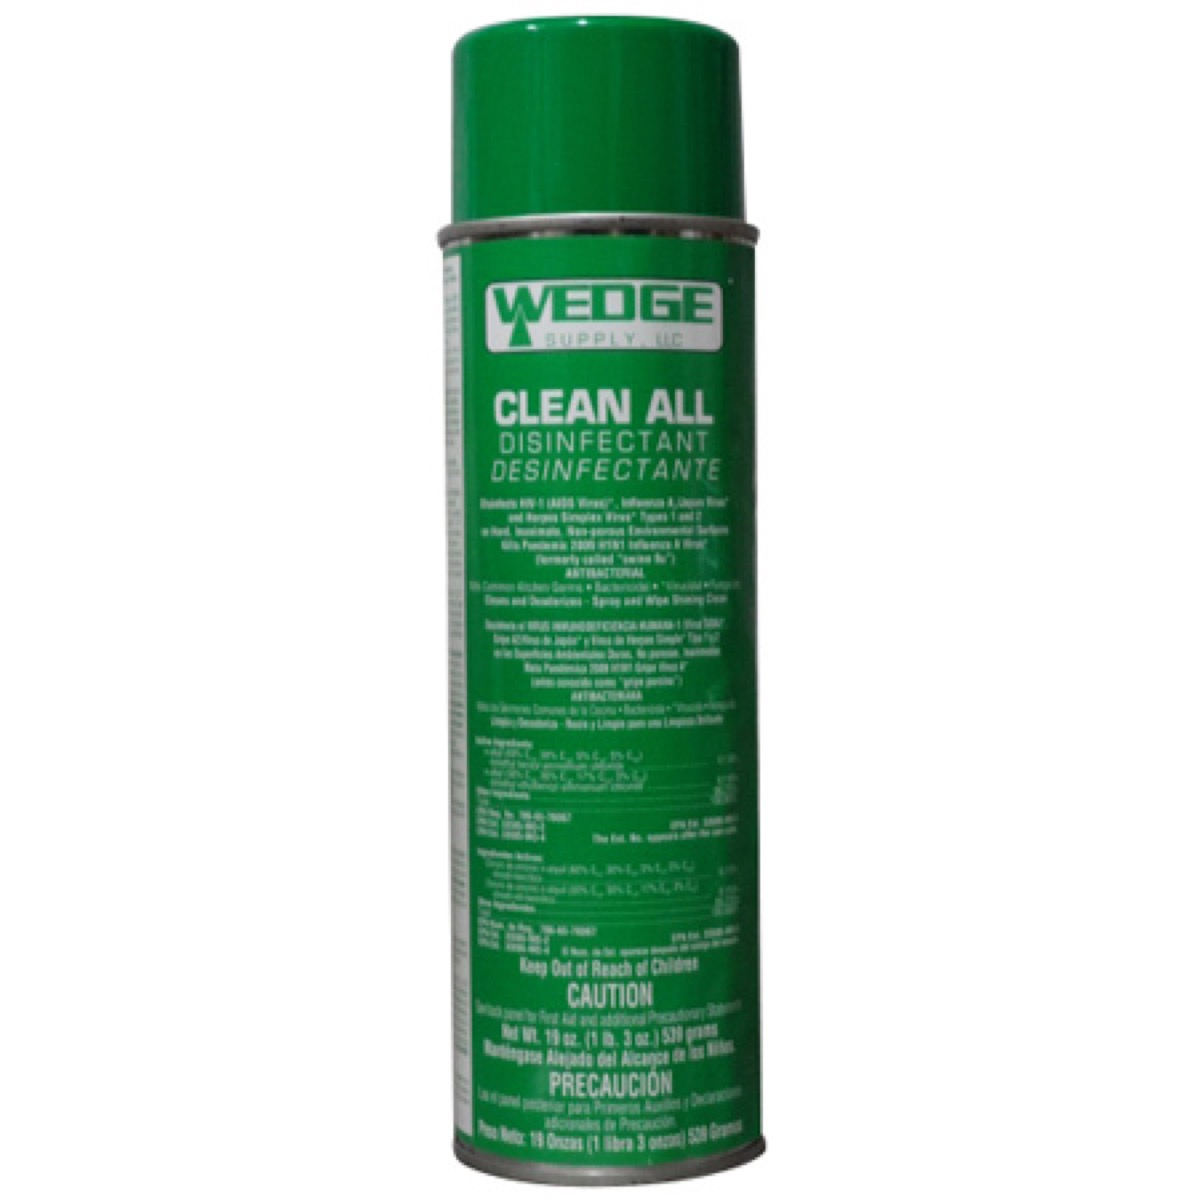 Wedge disinfectant